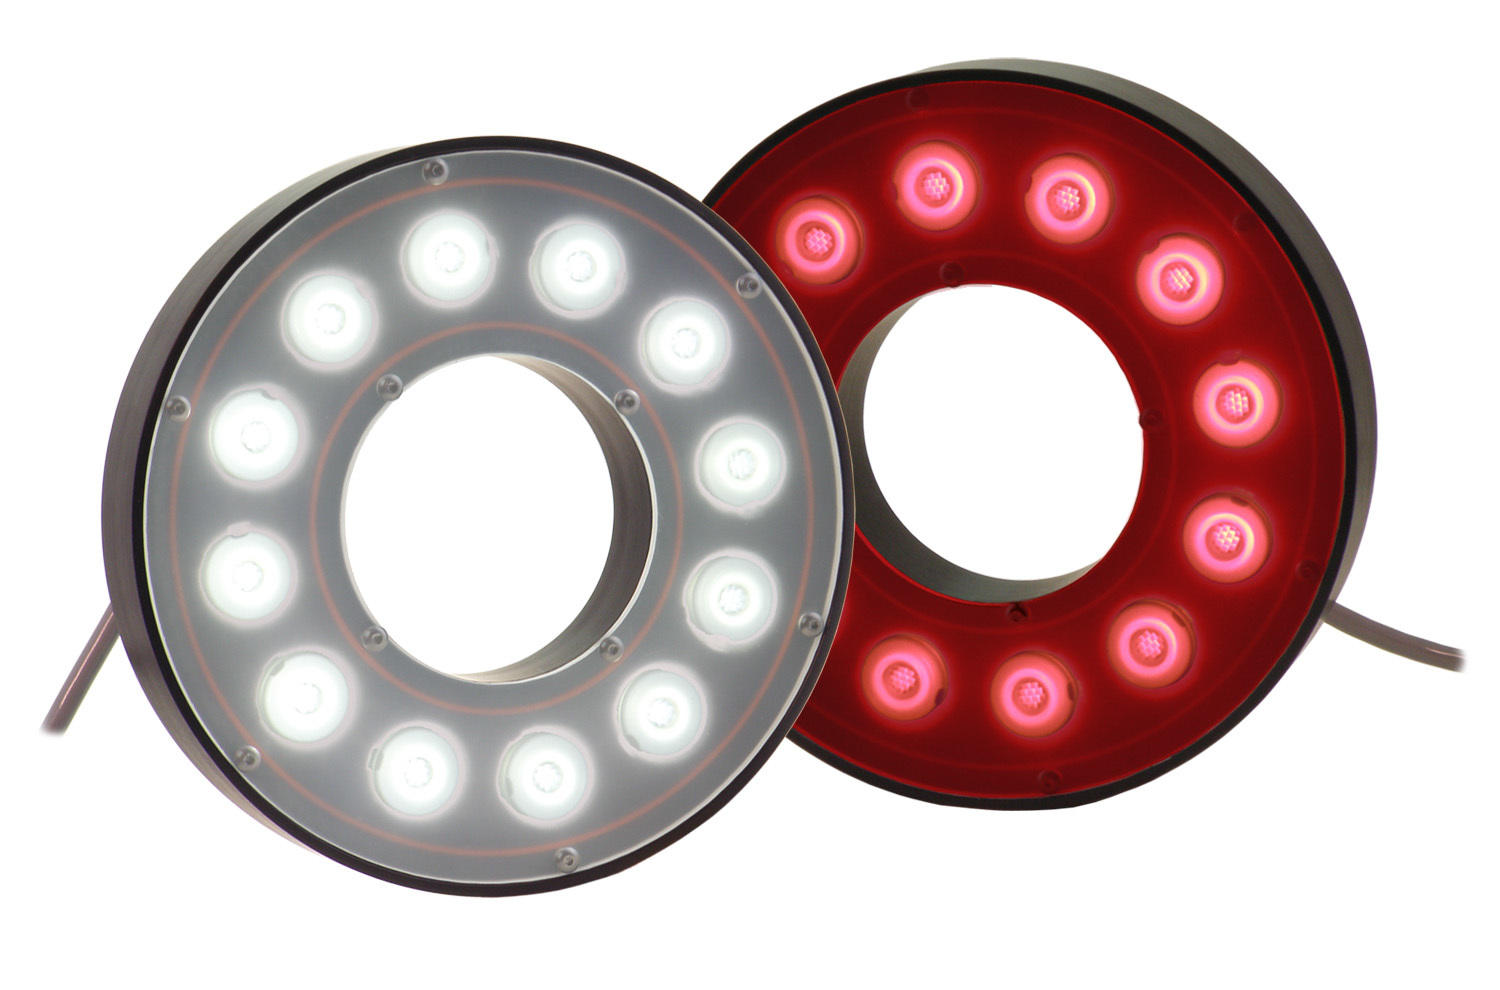 RL113 High Performance Bright Field Ring Light